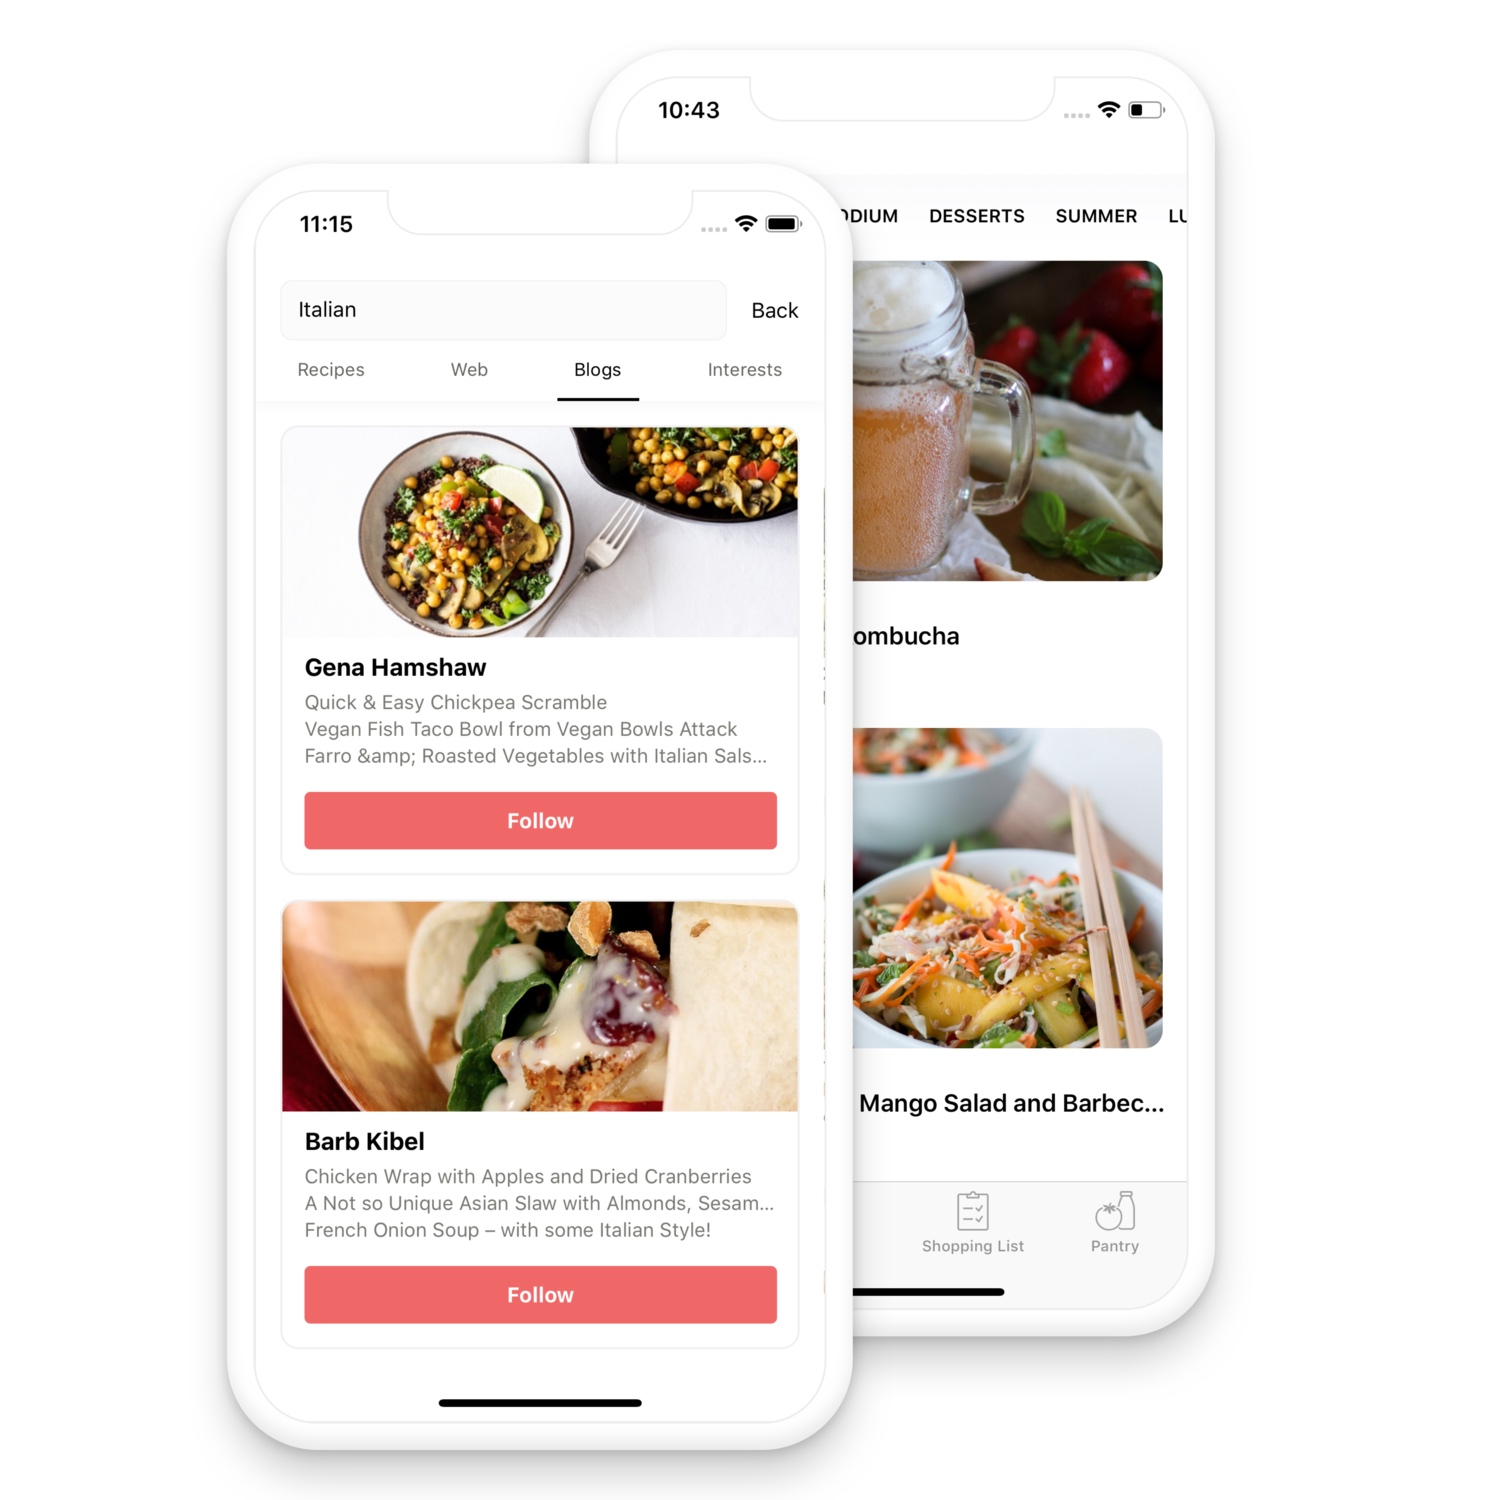 Follow food blogs and your interests - Chefling lets your follow your favorite food blogs and generates a feed of recipes that match your interests.